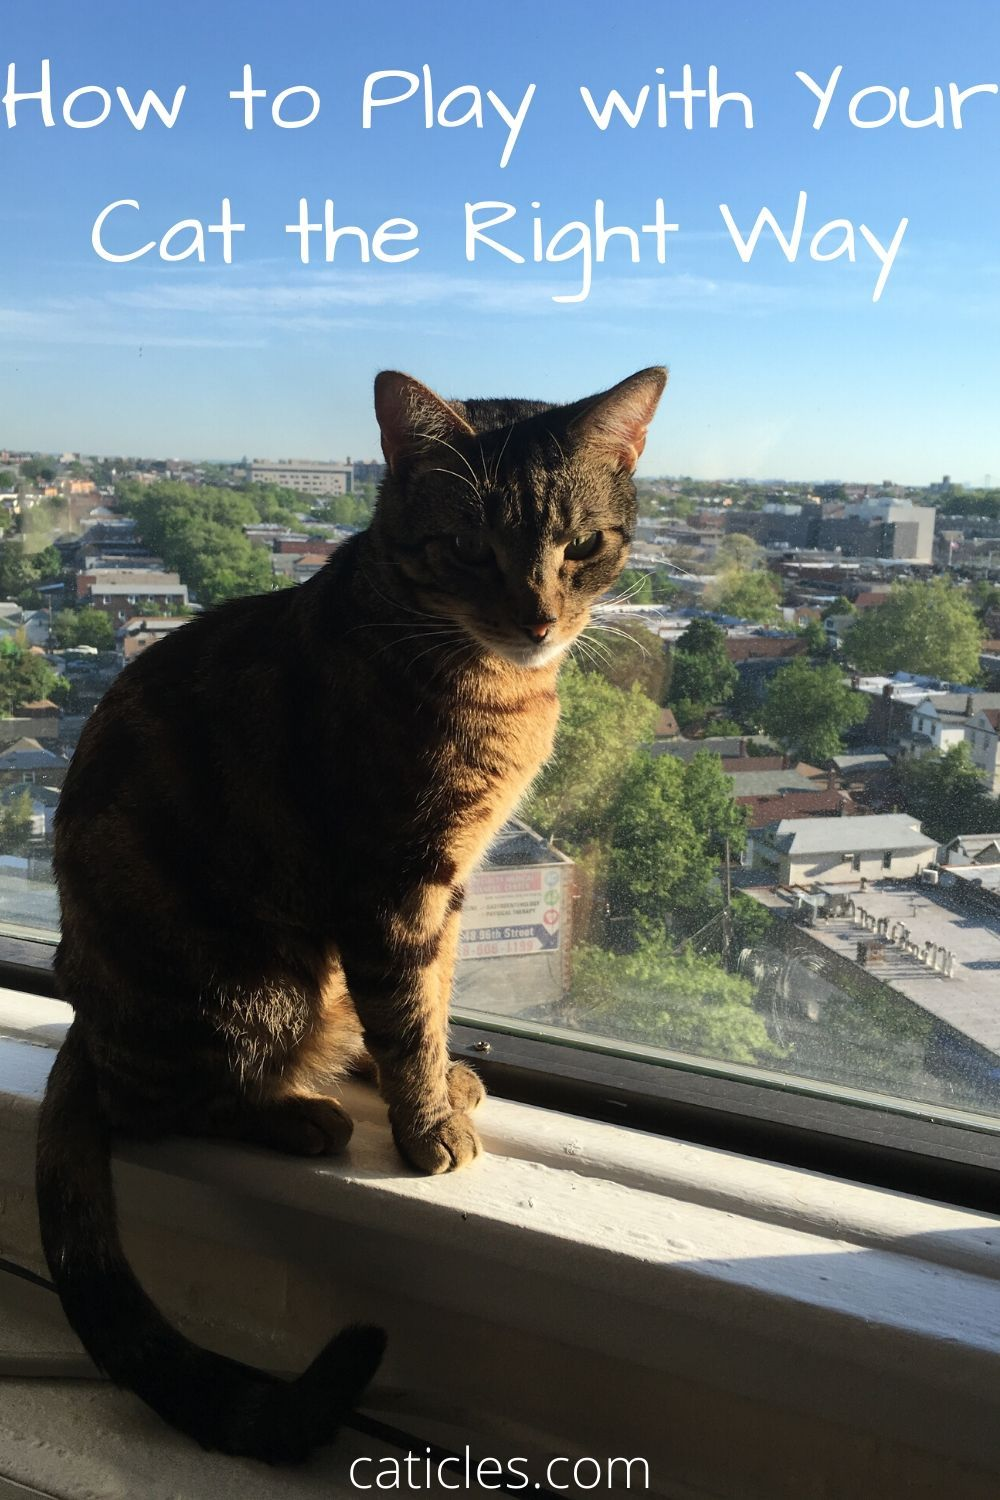 My Cat Isn't Interested in Playing Here Are 5 Easy Tricks